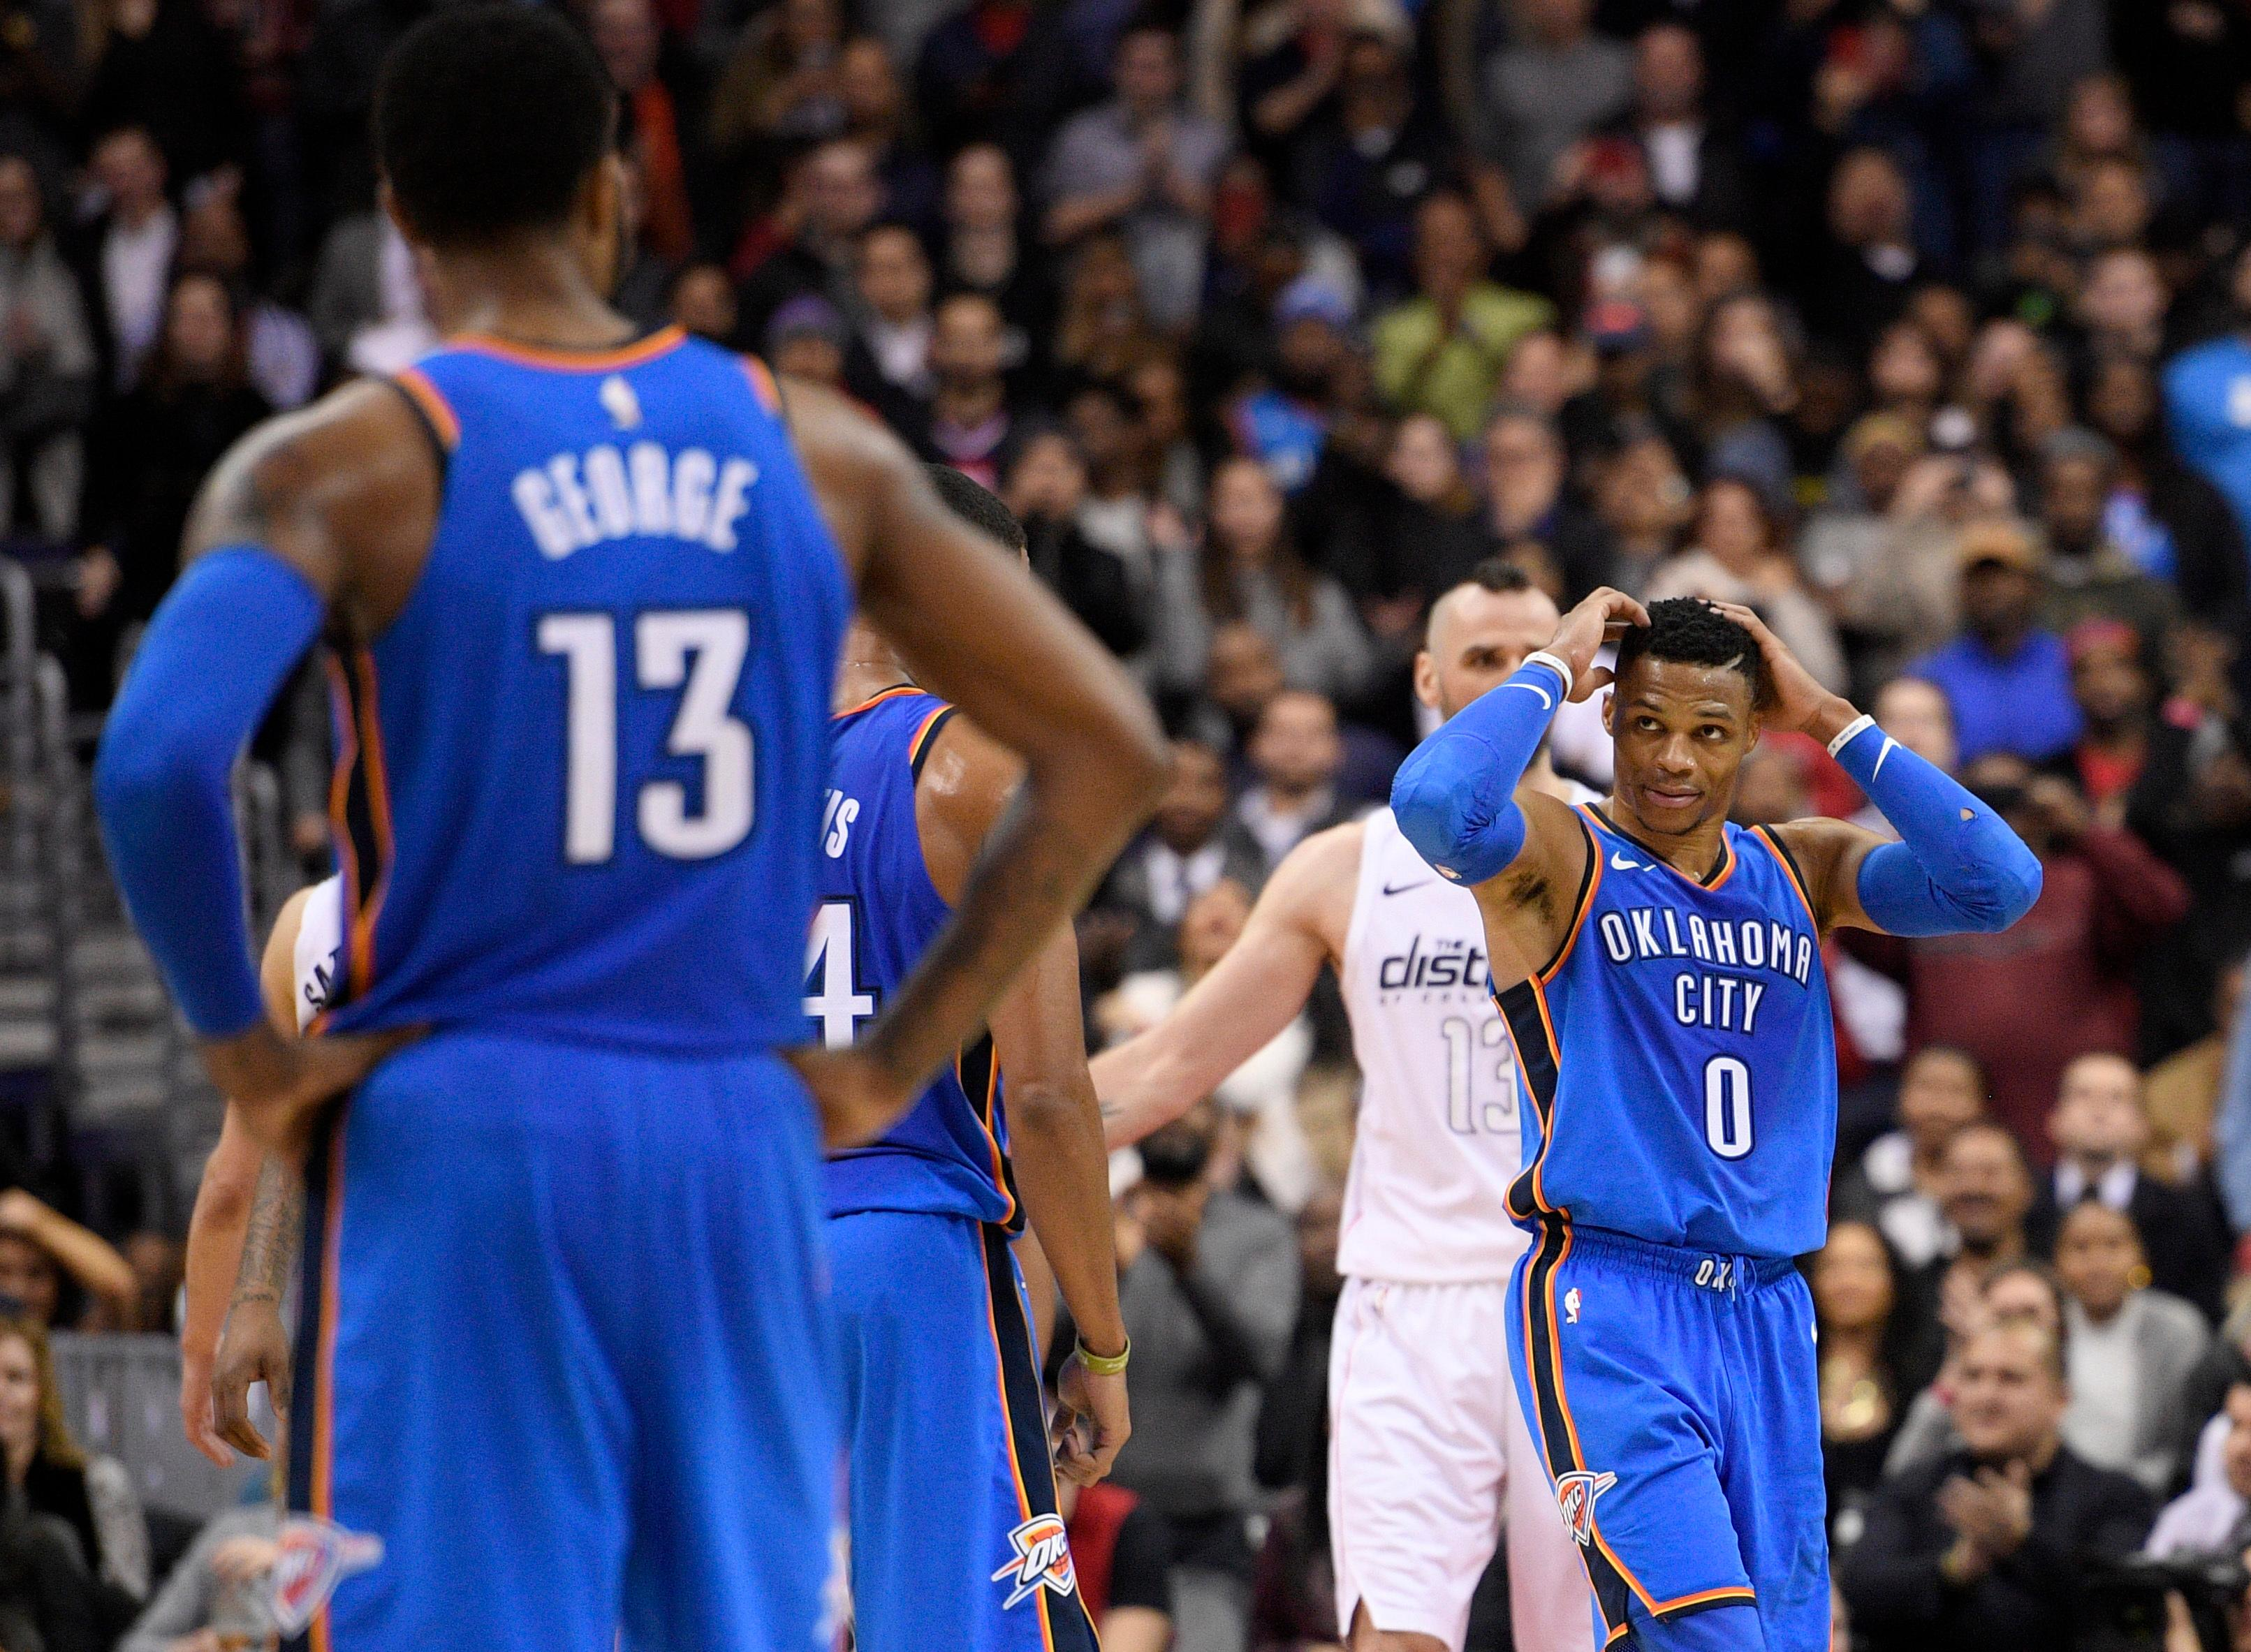 Oklahoma City Thunder guard Russell Westbrook (0) reacts in front of Washington Wizards center Marcin Gortat, back, during the second half of an NBA basketball game Tuesday, Jan. 30, 2018, in Washington. Also seen is Thunder forward Paul George (13). The Wizards won 102-96. (AP Photo/Nick Wass)